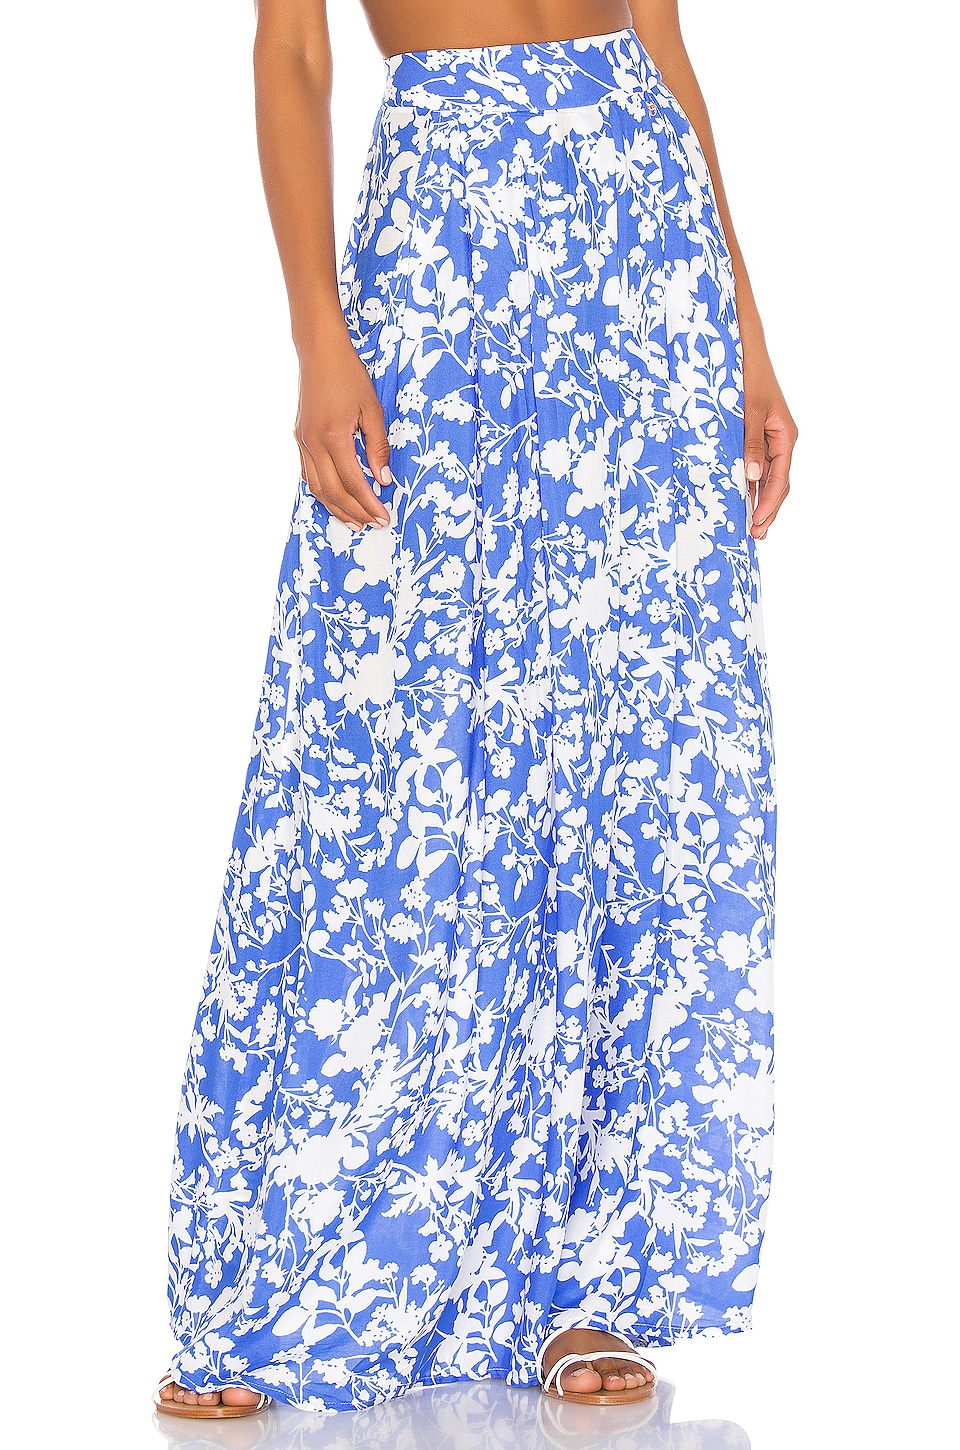 Maaji Smile And Wink Skirt in Blue & White Floral